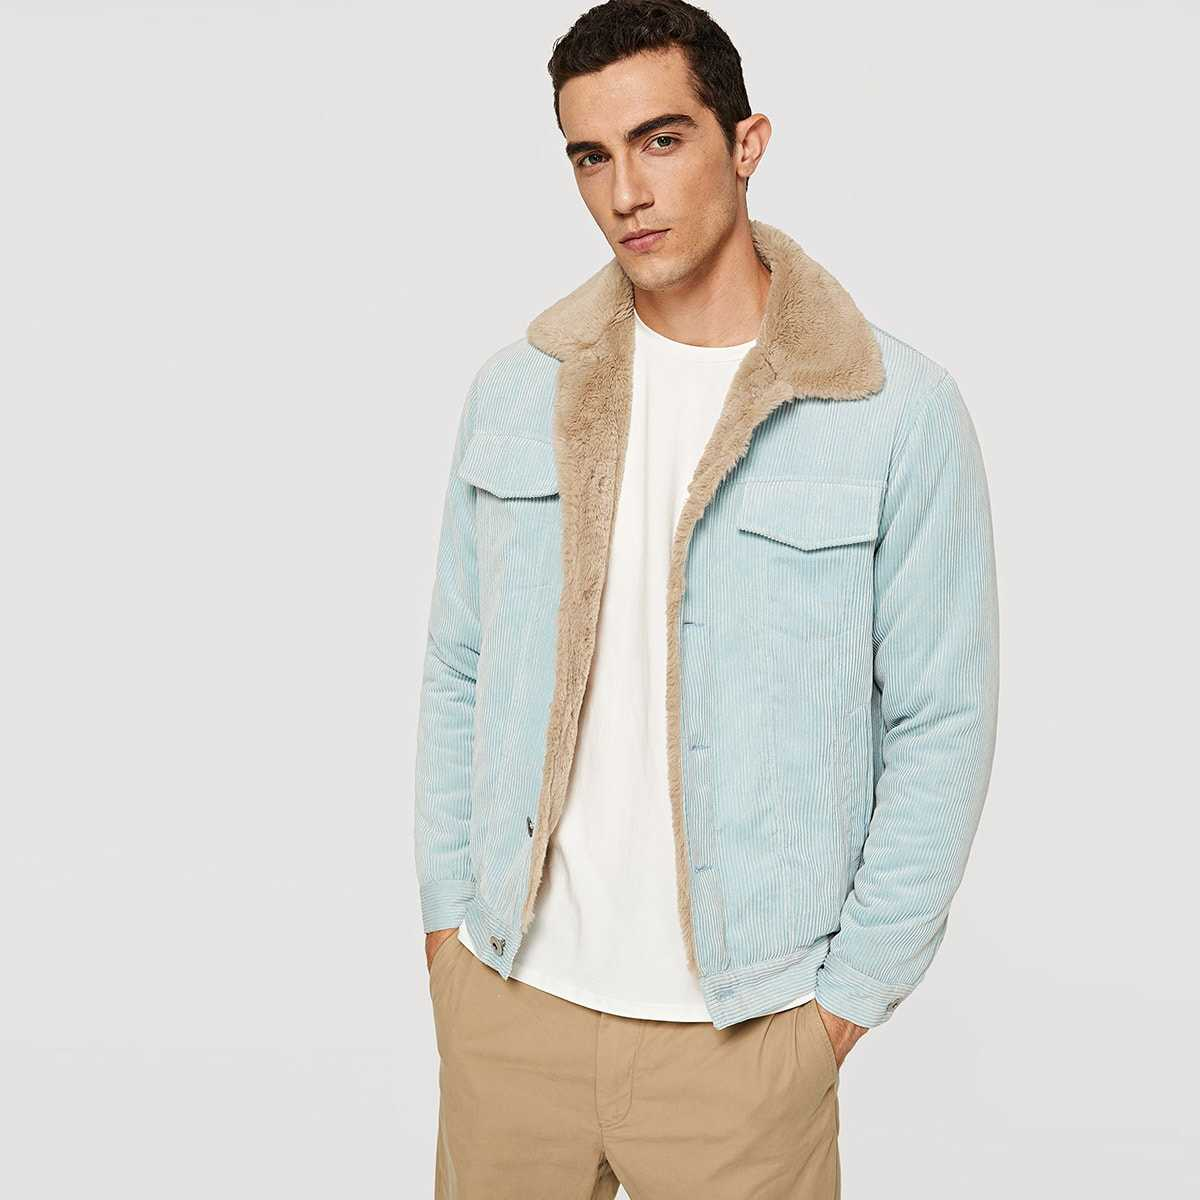 Guys Button Up Pocket Coat in Blue by ROMWE on GOOFASH